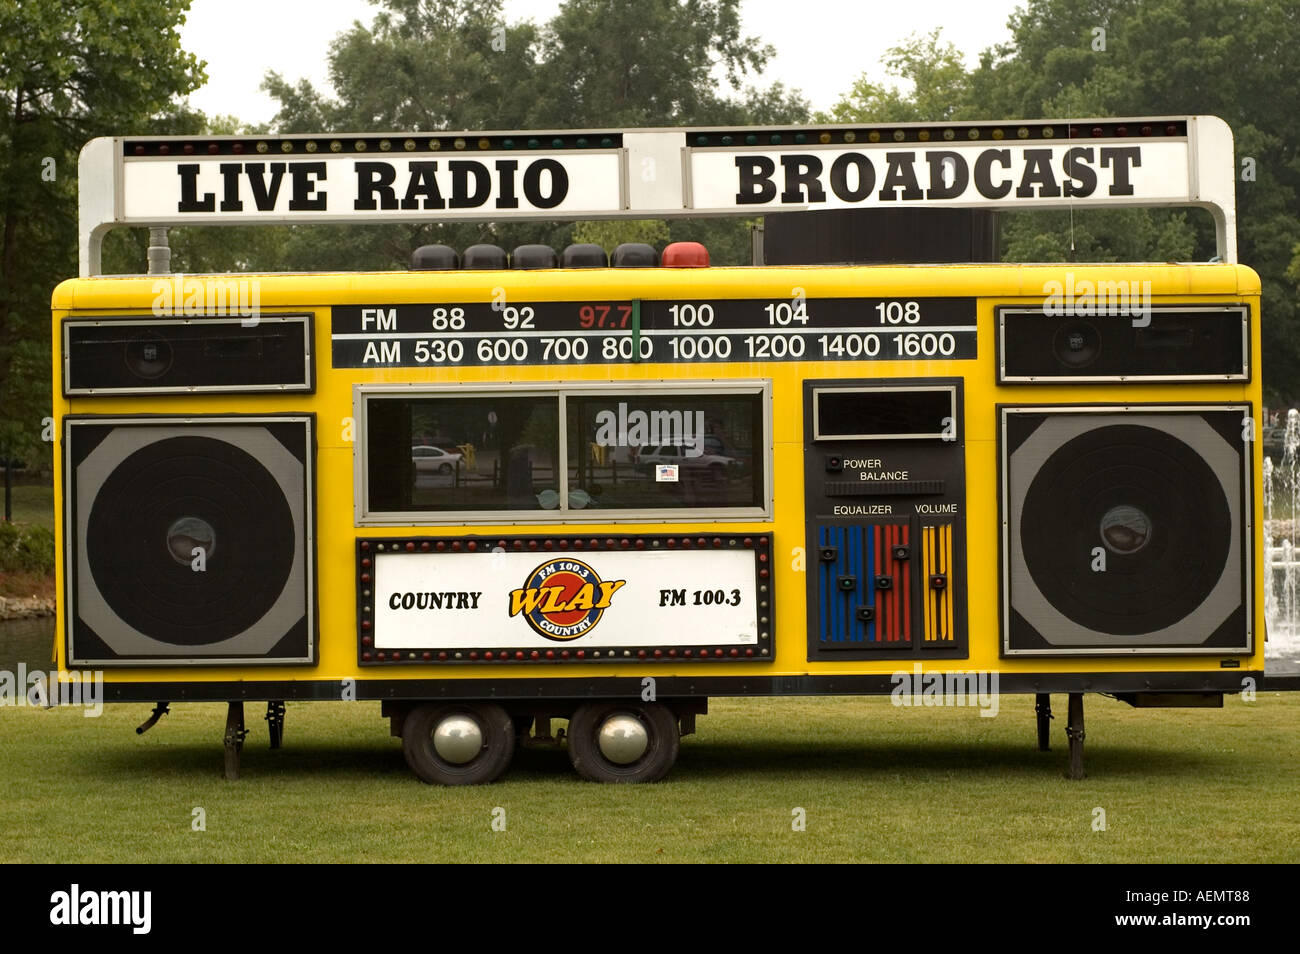 Country WLAY Radio Live Broadcast Trailer at the Helen Keller Festival Spring Park Tuscumbia Alabama Stock Photo